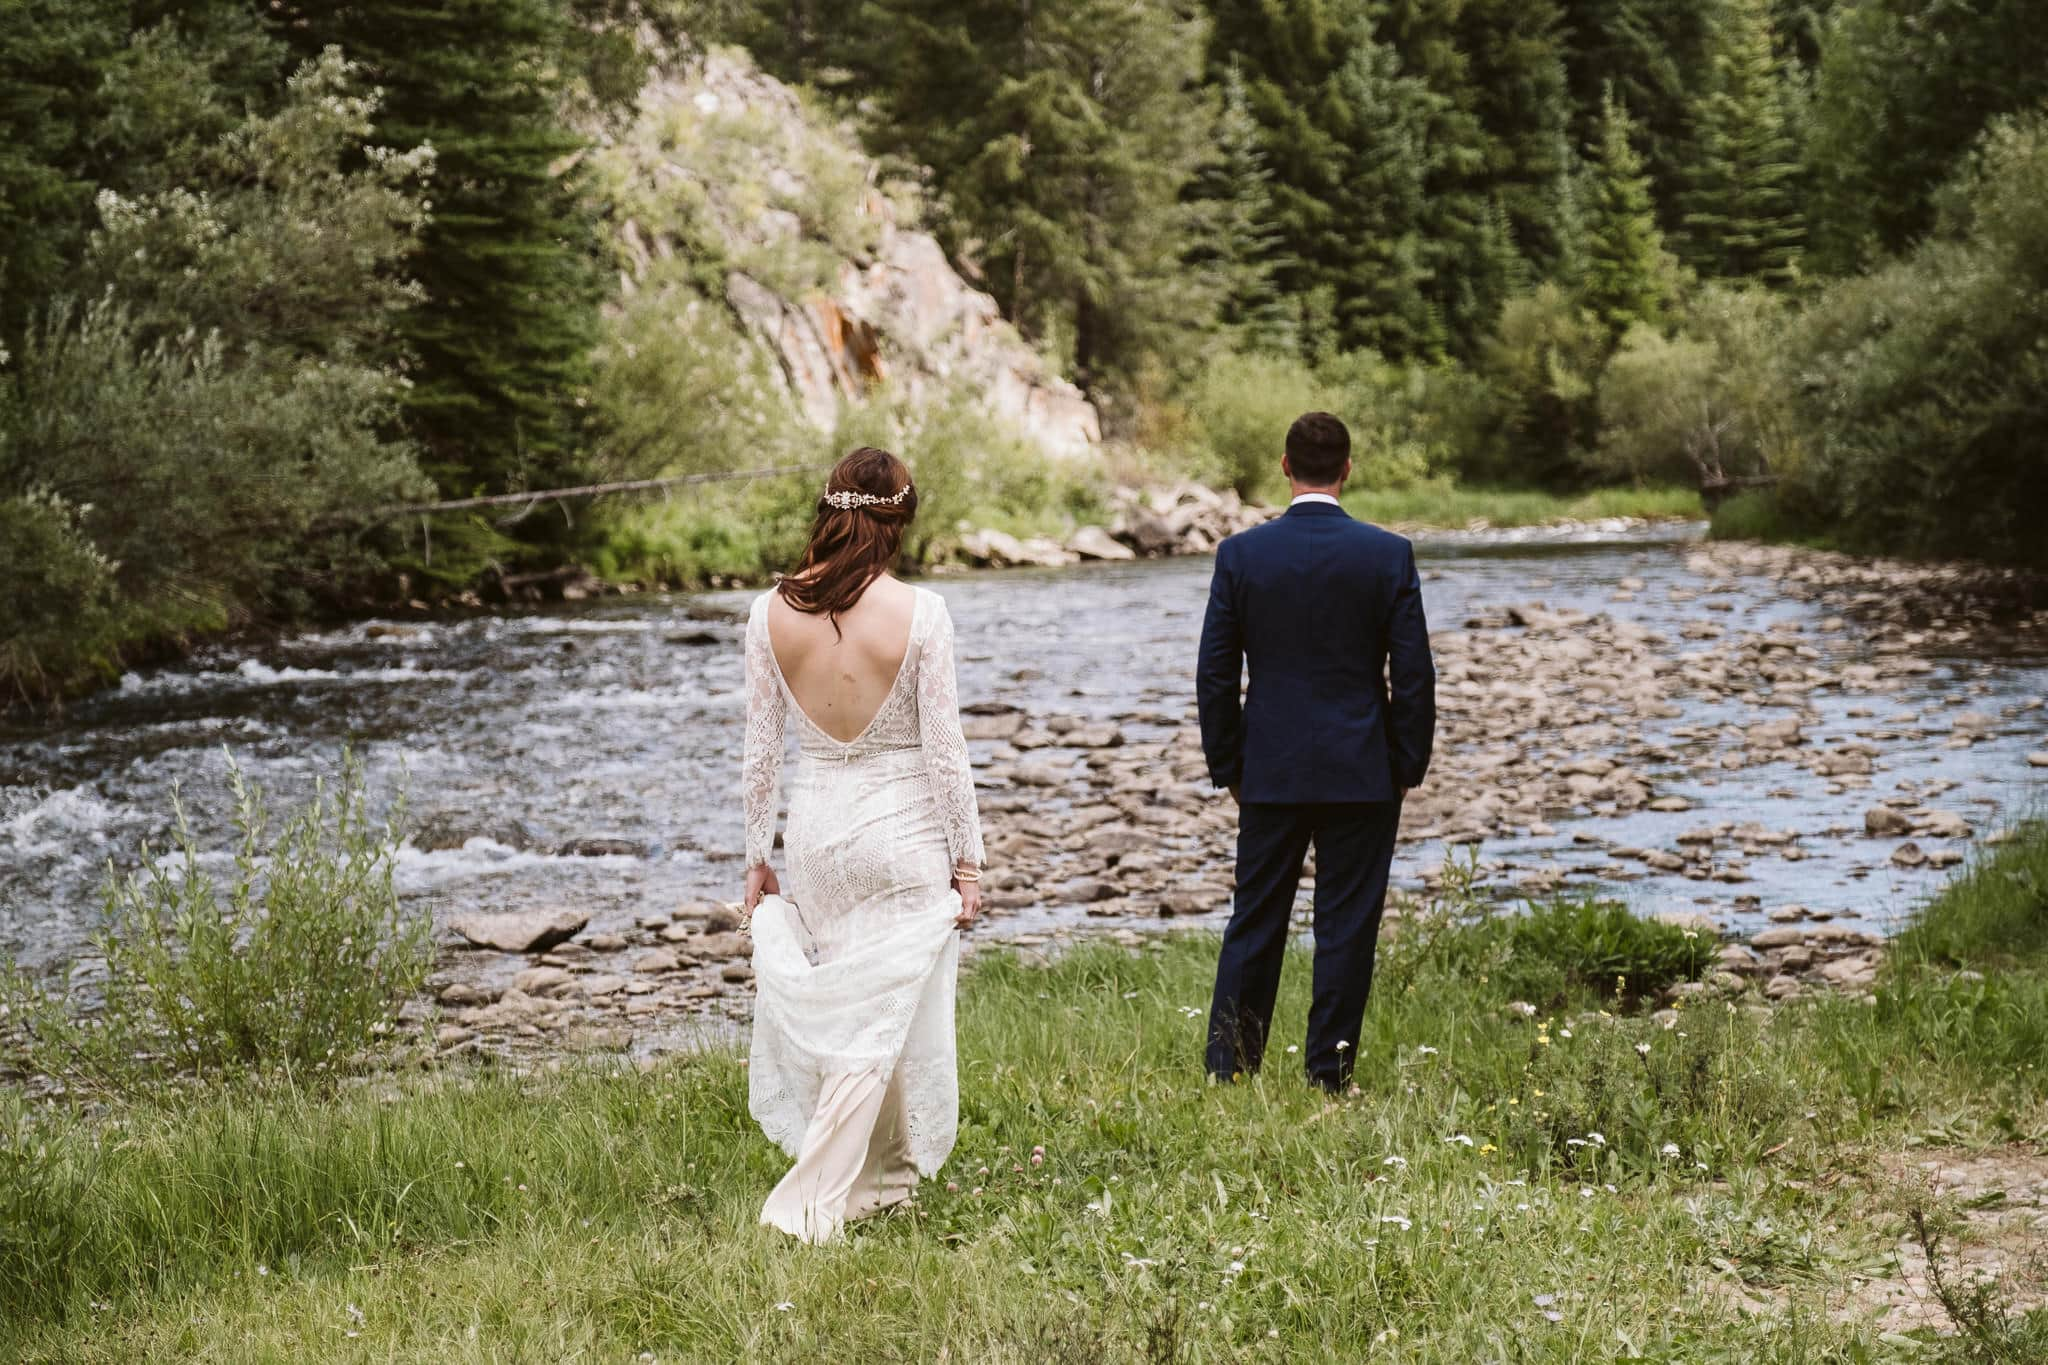 Bride and groom do first look near Blue River in Breckenridge.